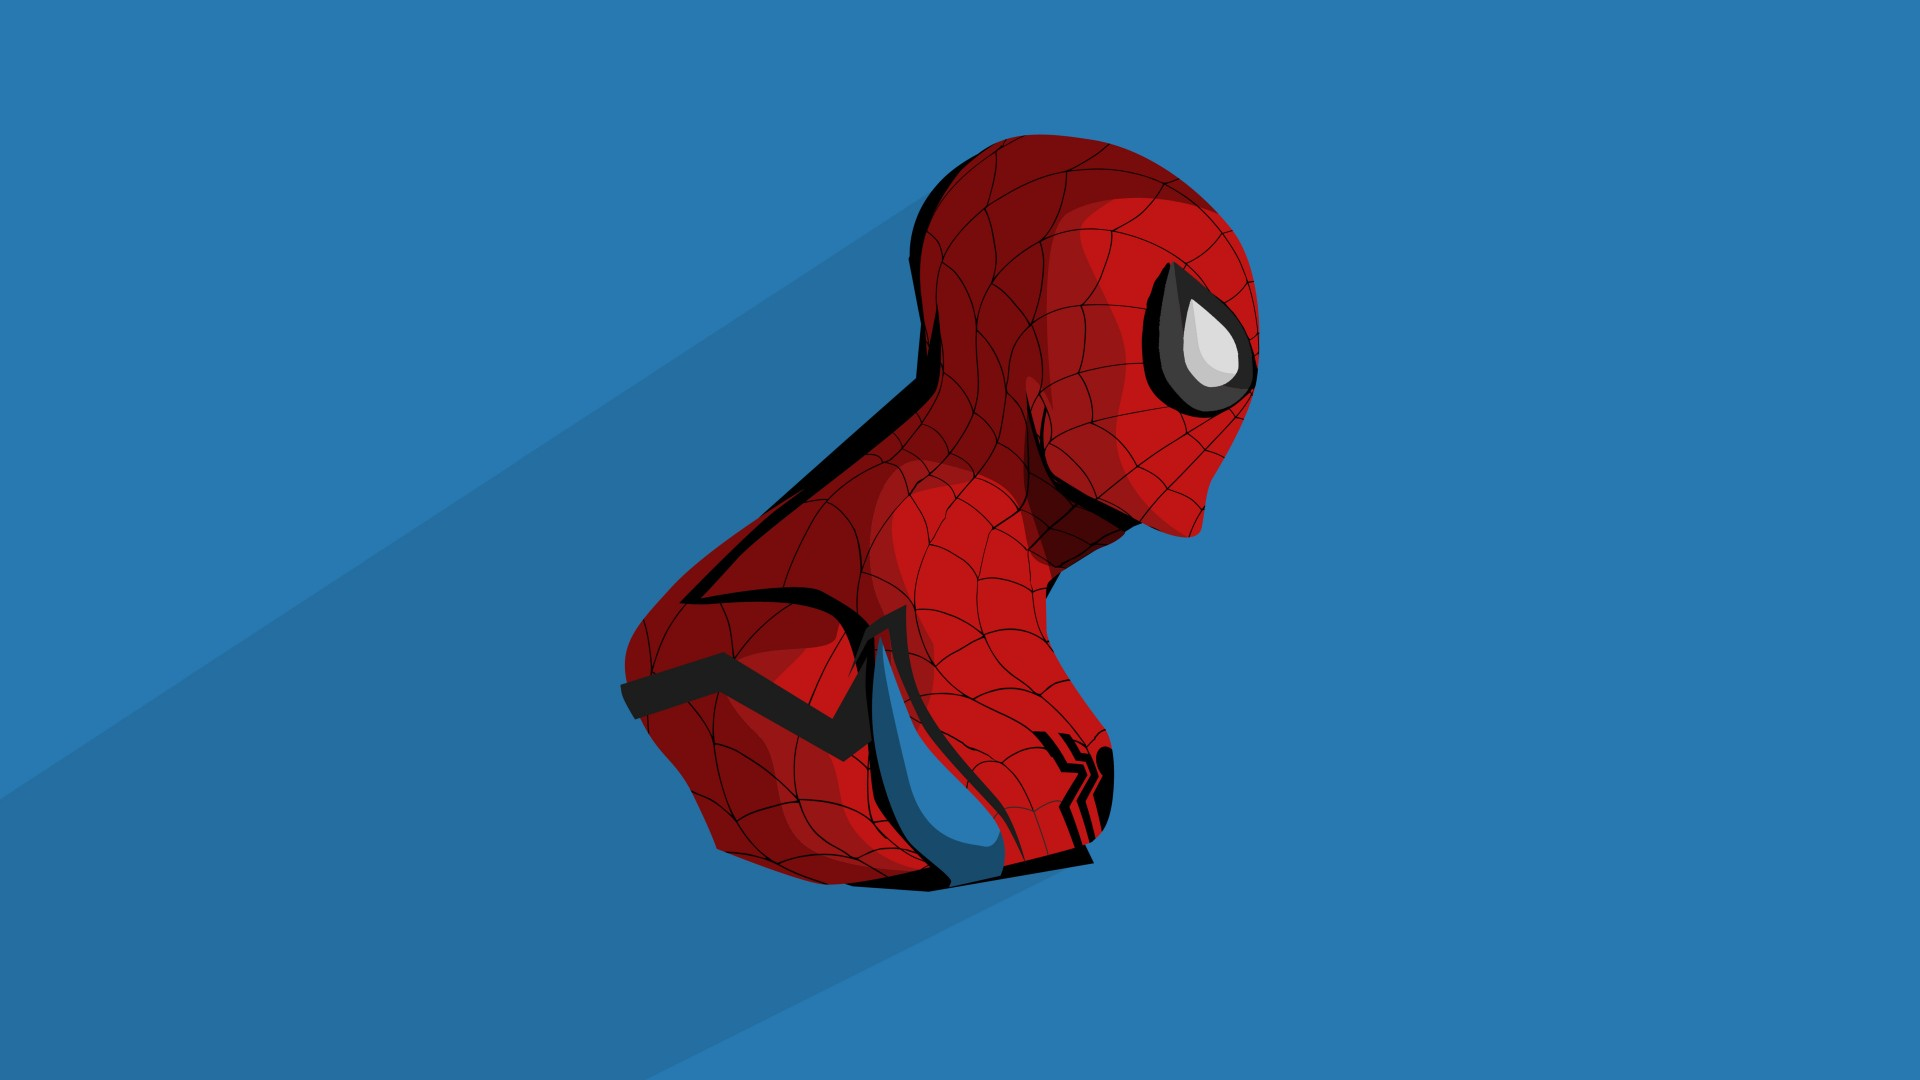 Minimalist Cute Desktop Wallpaper Spider Man Minimal Artwork 4k Wallpapers Hd Wallpapers